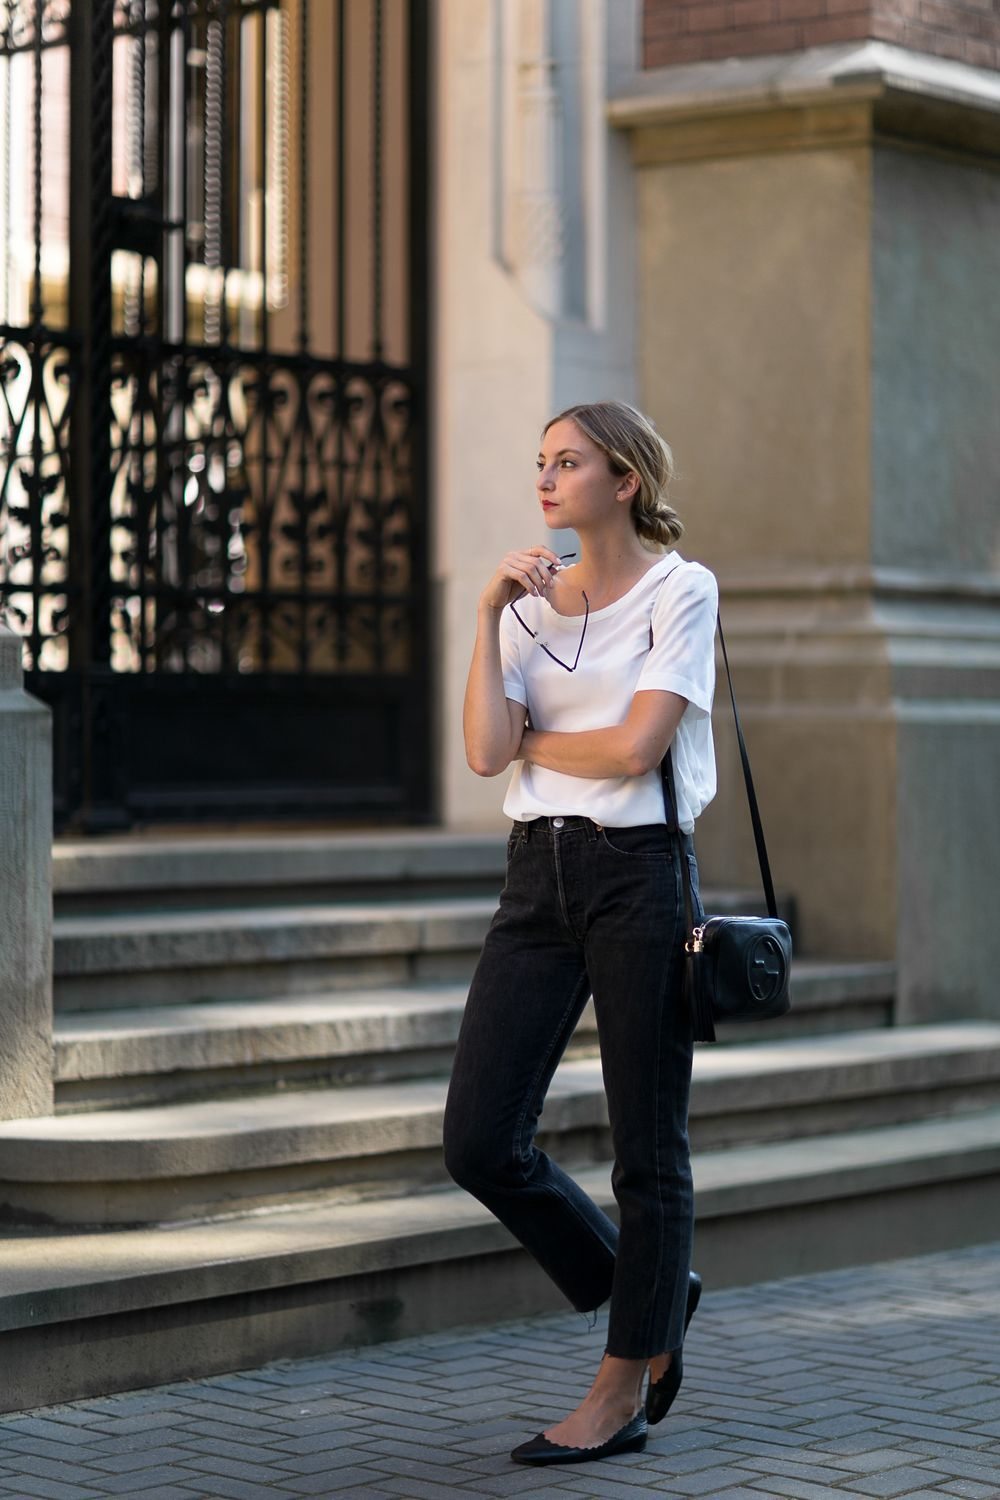 I Bought This Outfit It Looks Amazing On: 20 Everyday Looks To Be Inspired By This Fall (The Edit